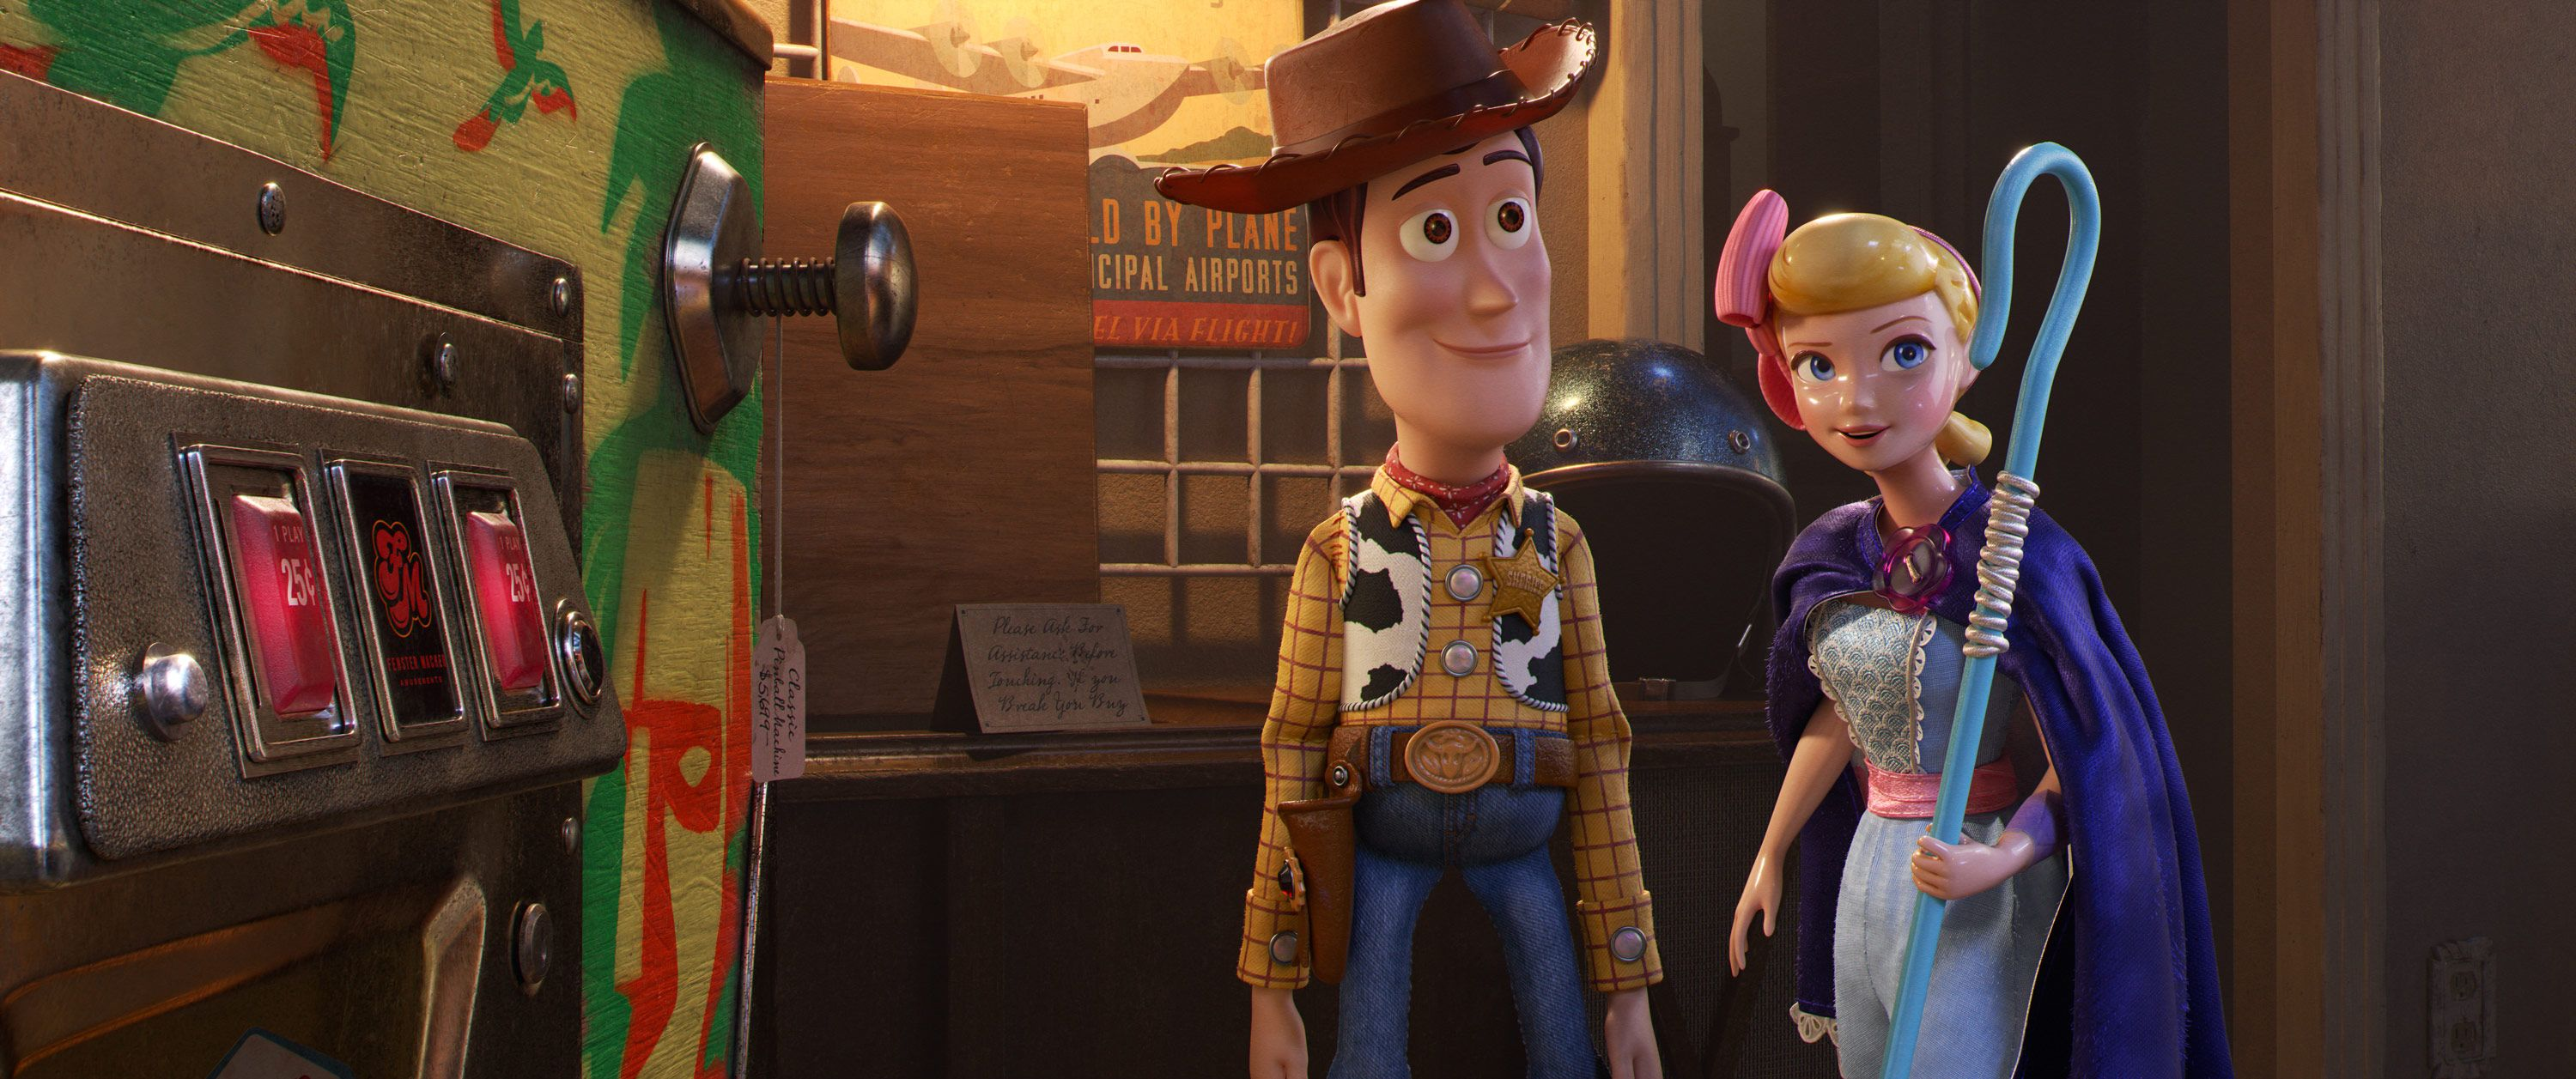 Toy Story 4 producer explains decision behind Woody and Buzz ending